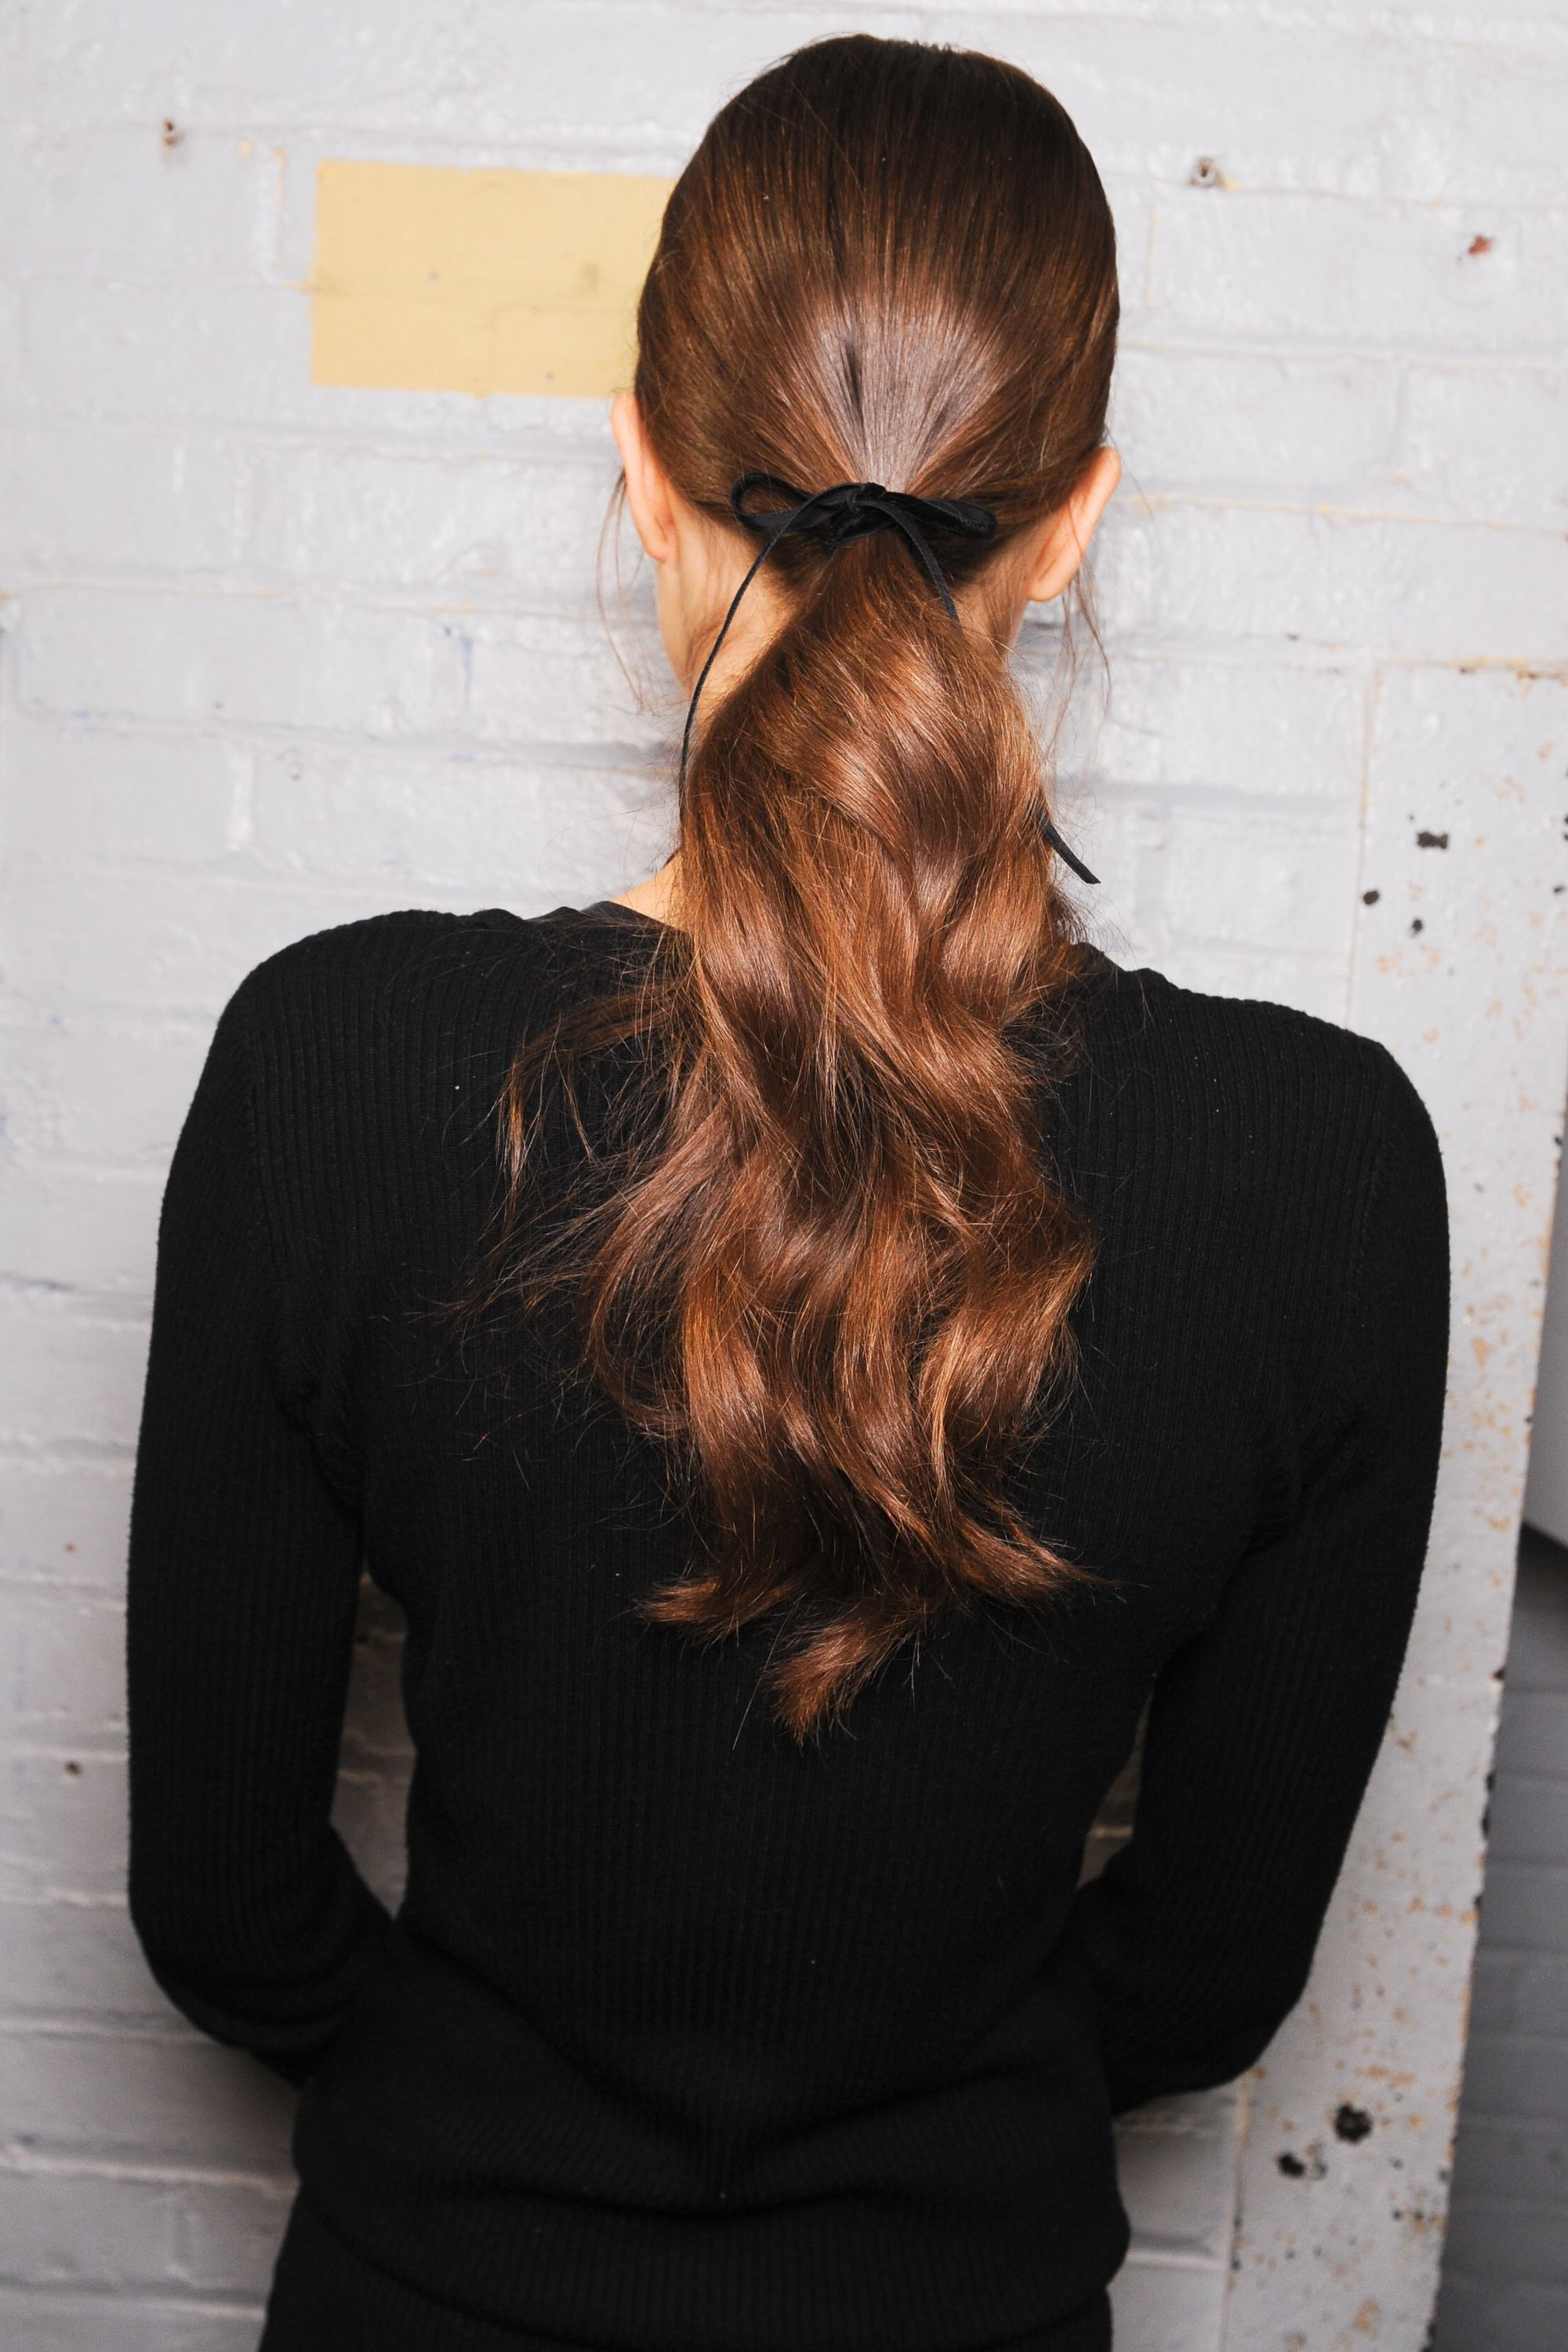 ribbon hair accessory trend with a curly ponytail